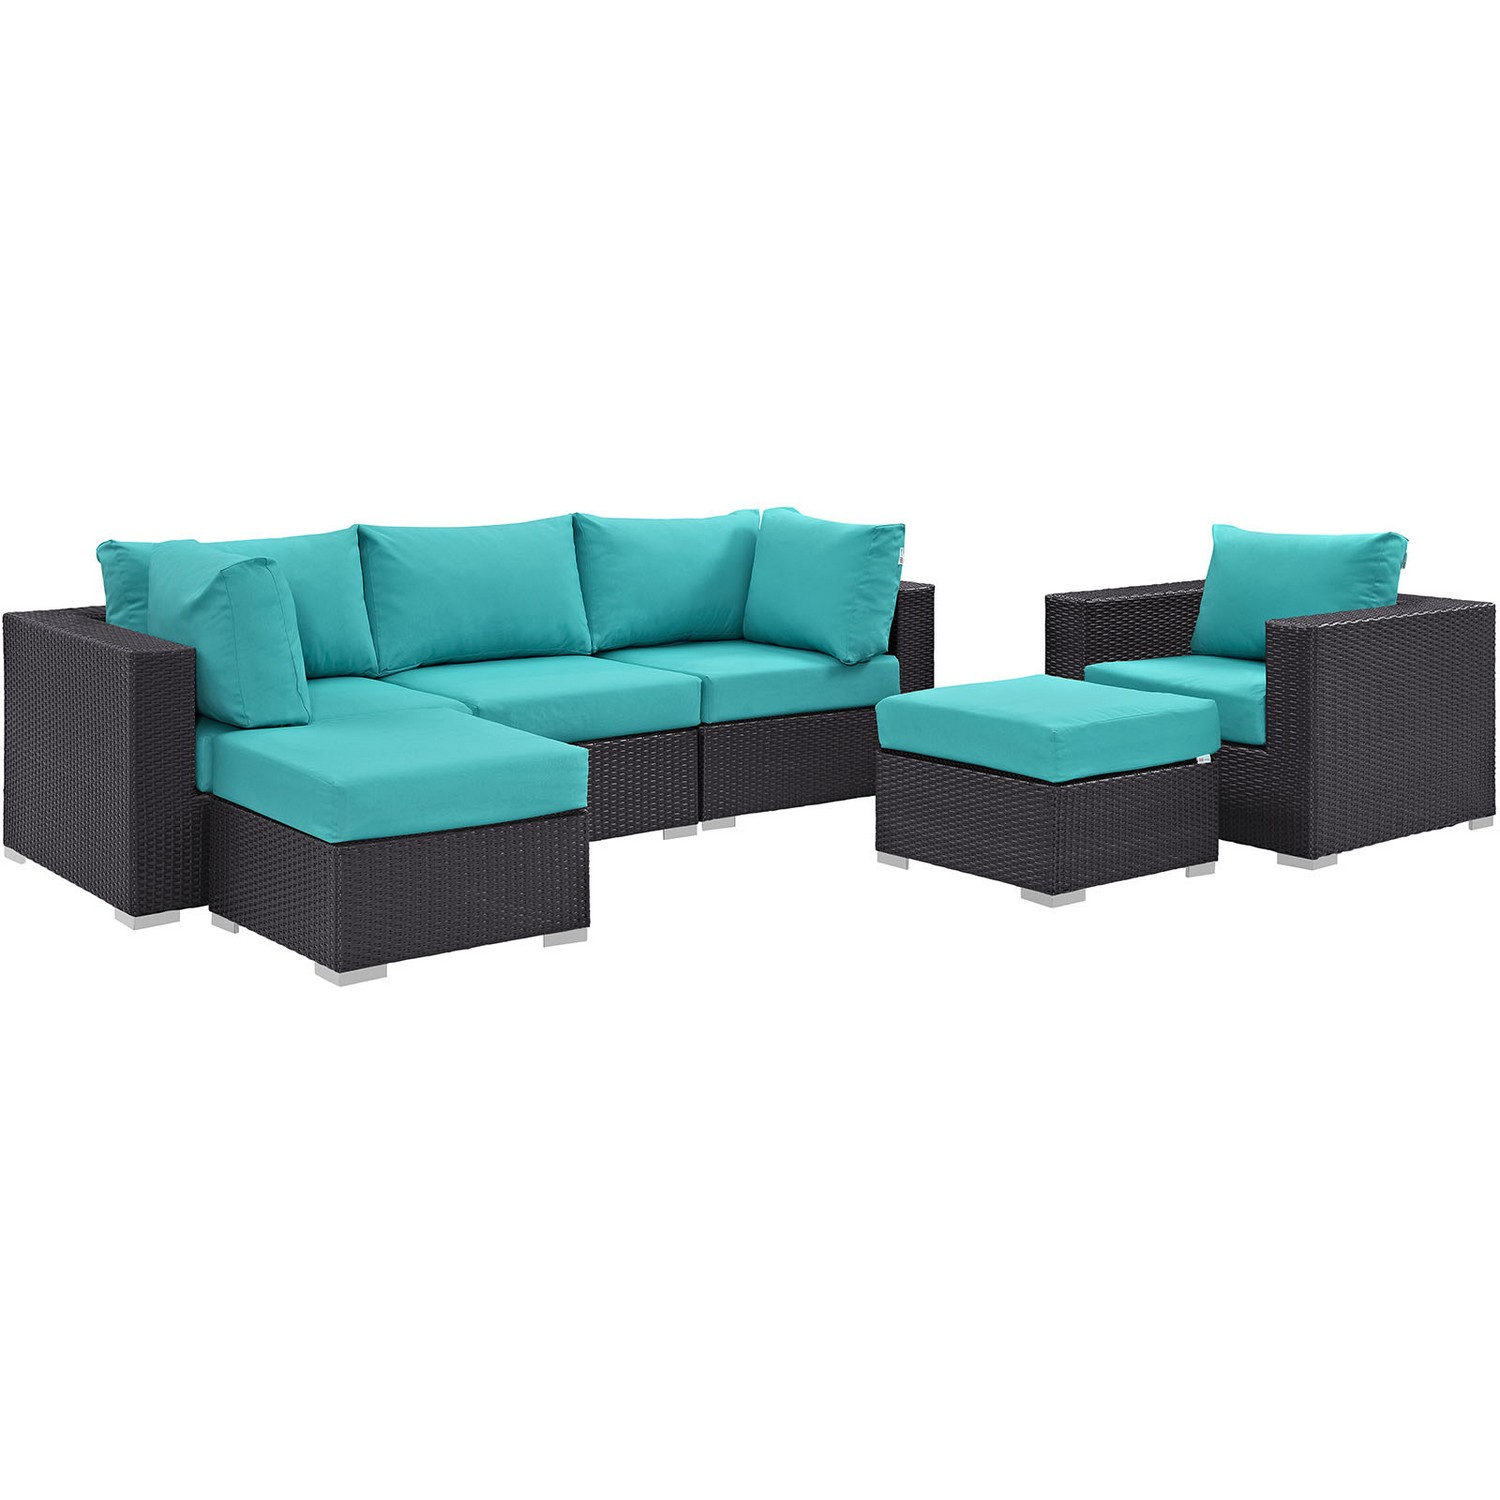 Modway Convene 6 Piece Outdoor Patio Sectional Set - Espresso Turquoise